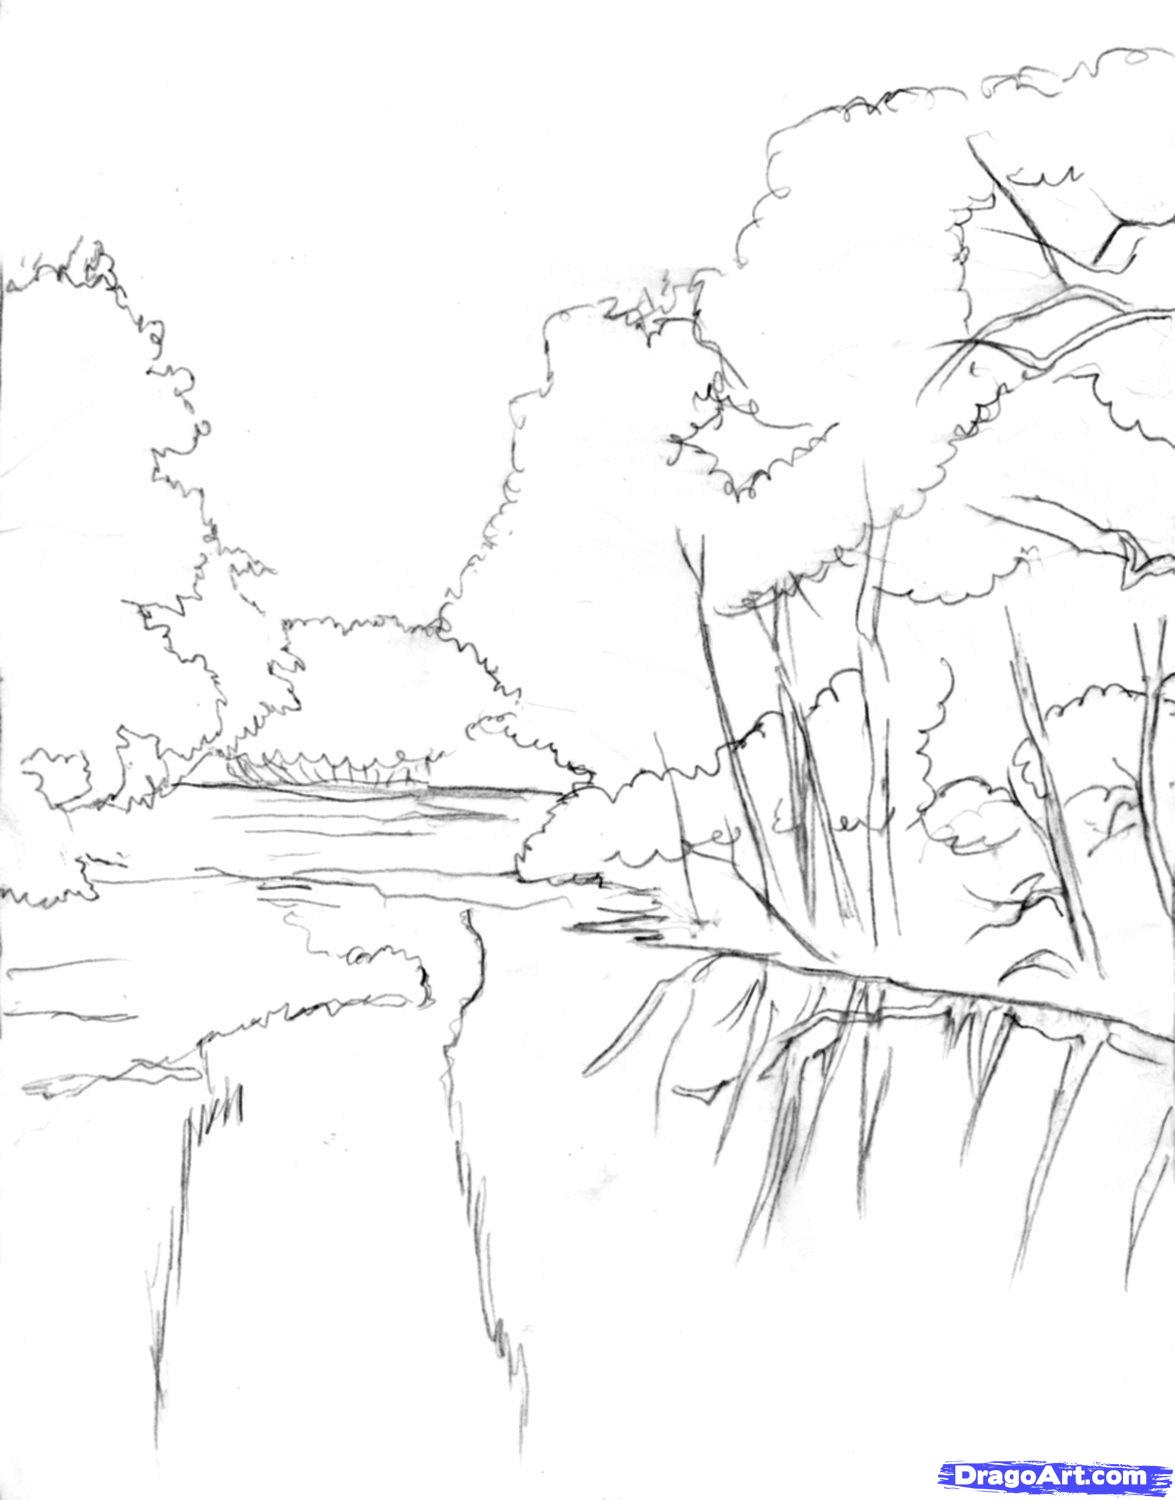 1175x1500 How To Draw A Realistic River Step1 Step 8 And Shade It Too